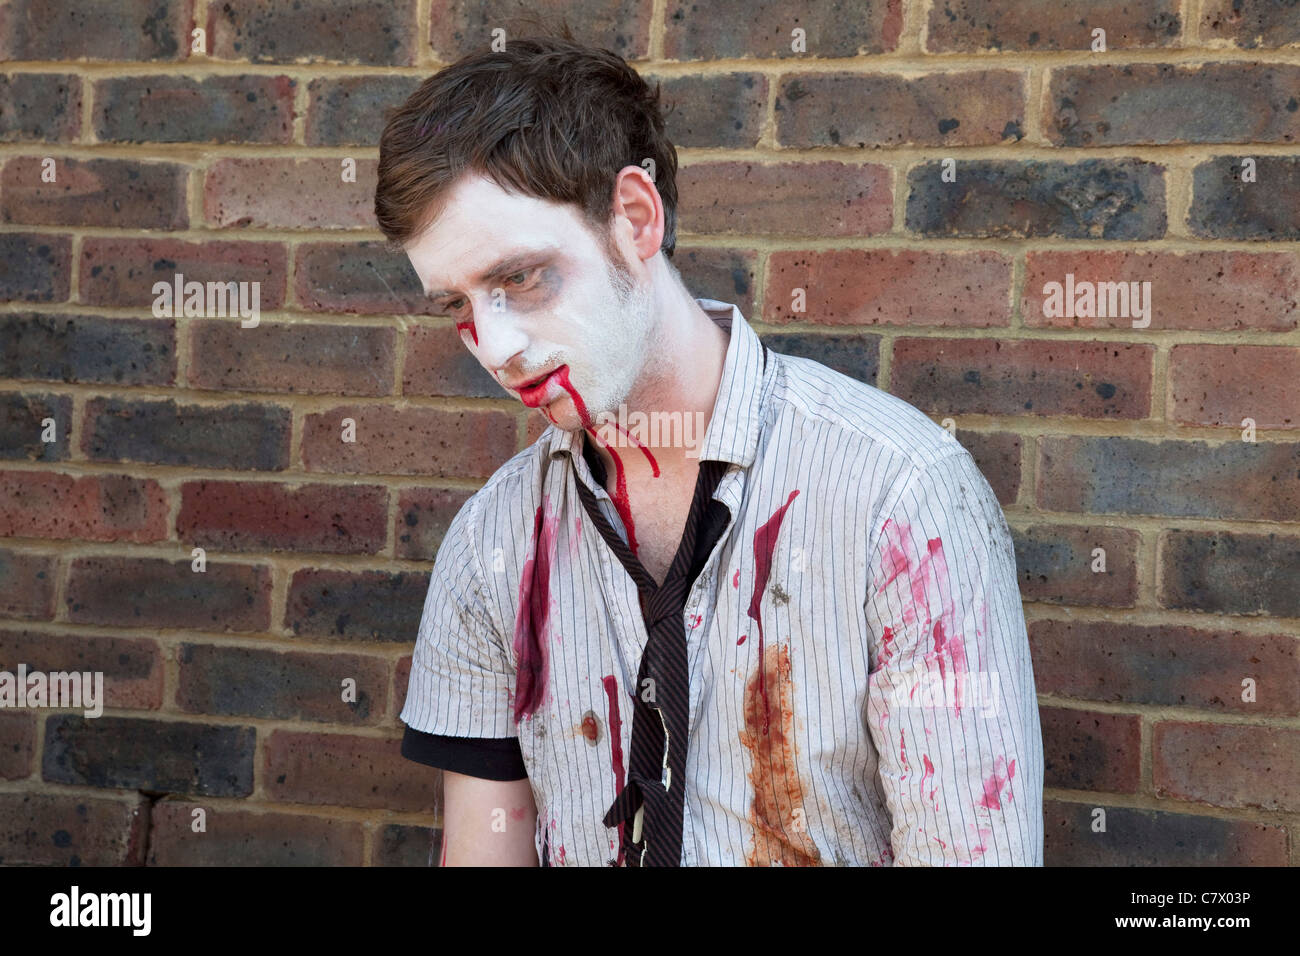 Stoke Newington Zombie protest. Demonstrating against the planned opening of a large Sainsbury's supermarket. - Stock Image